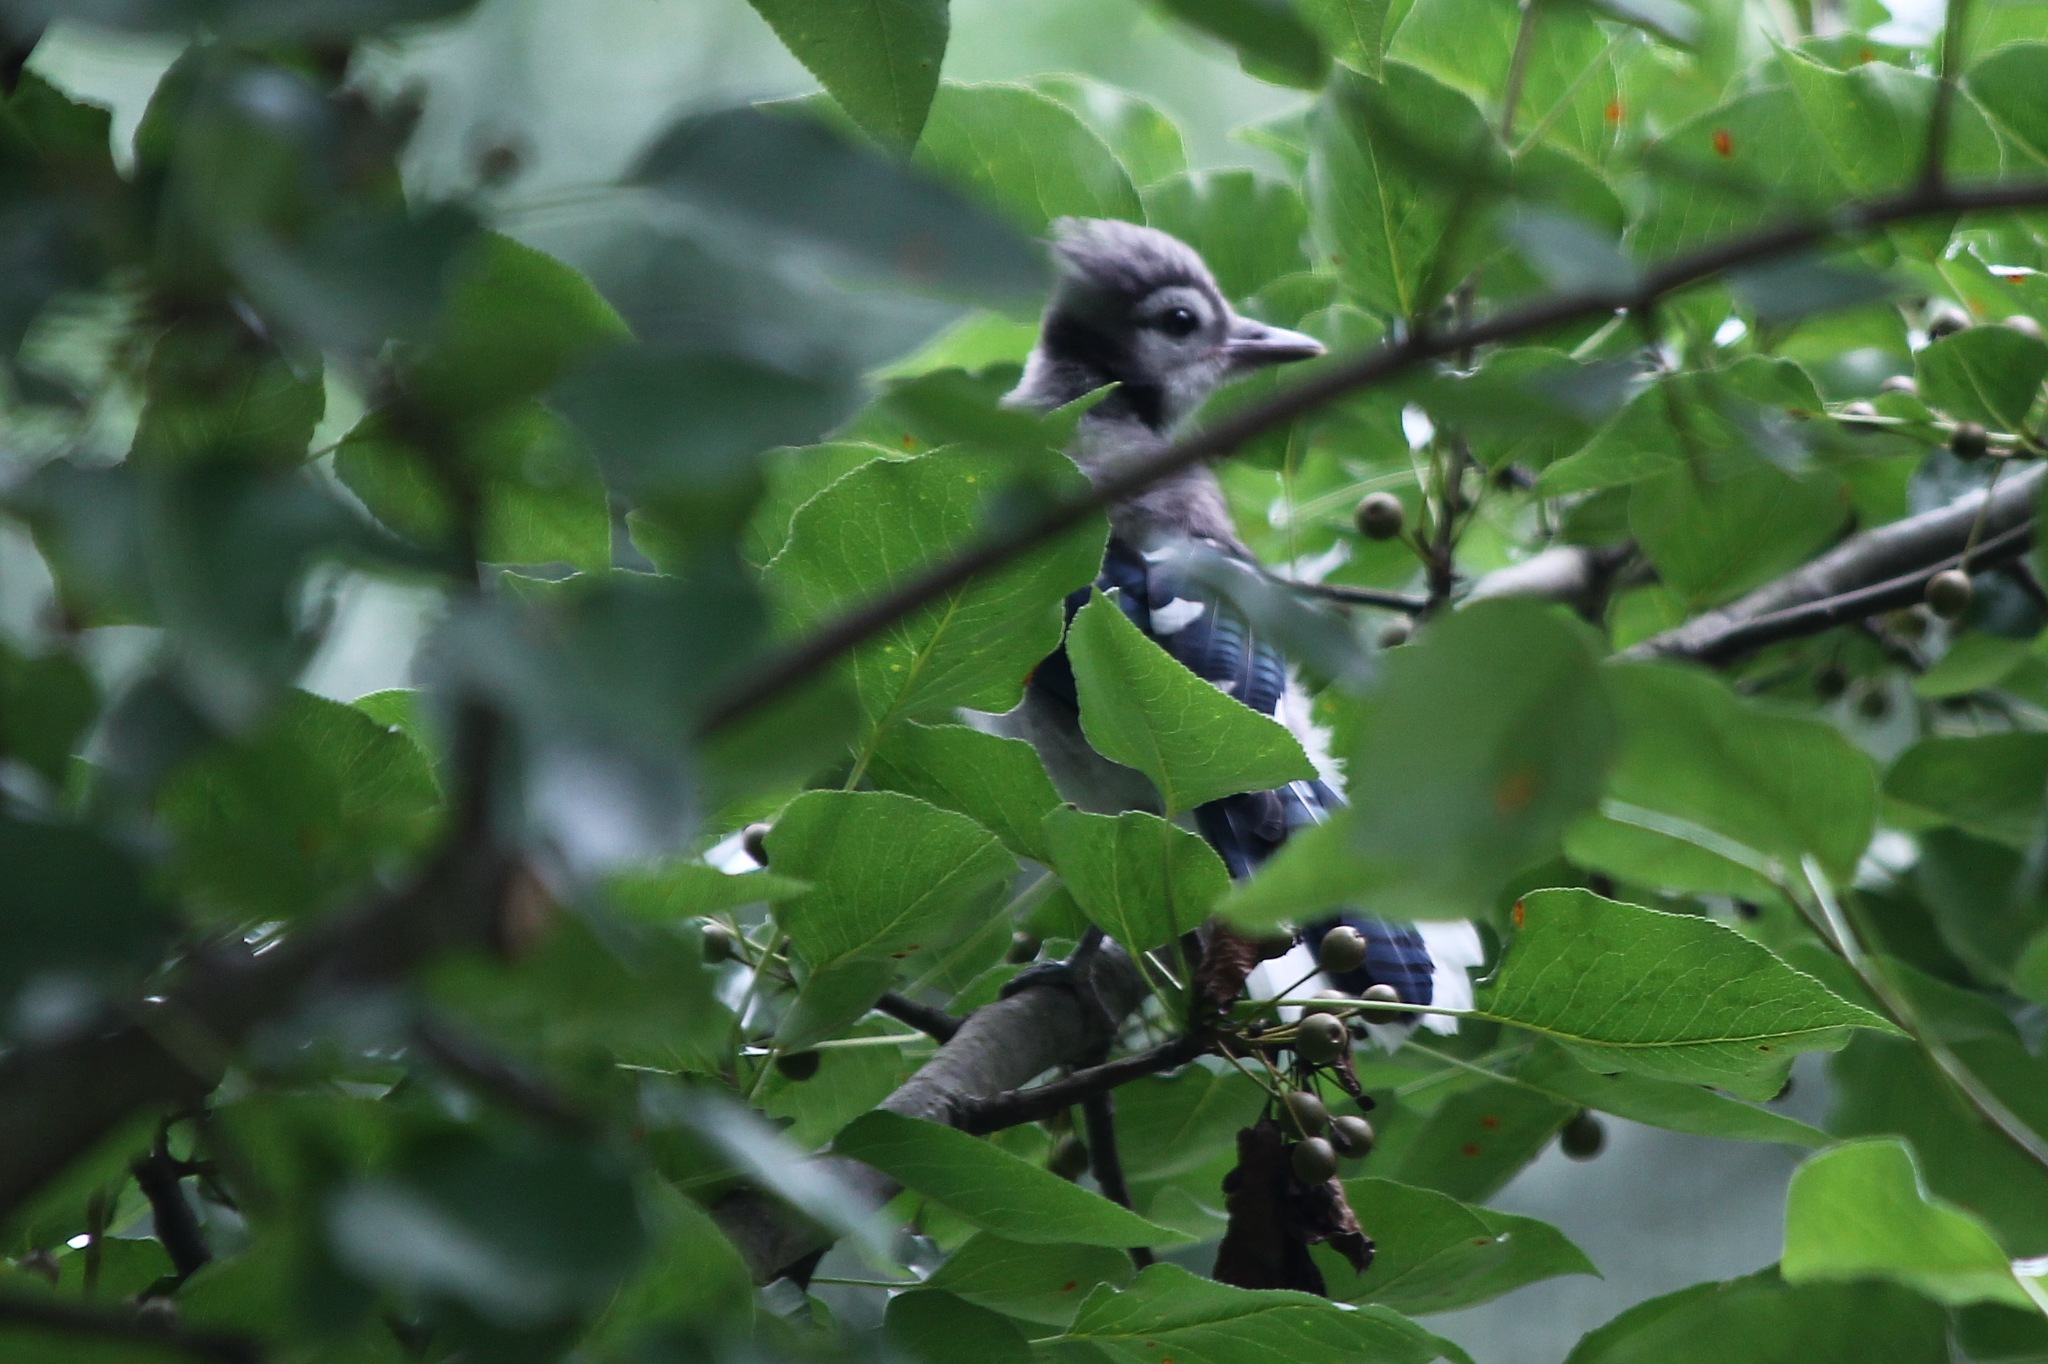 bluejay in the trees by Jim